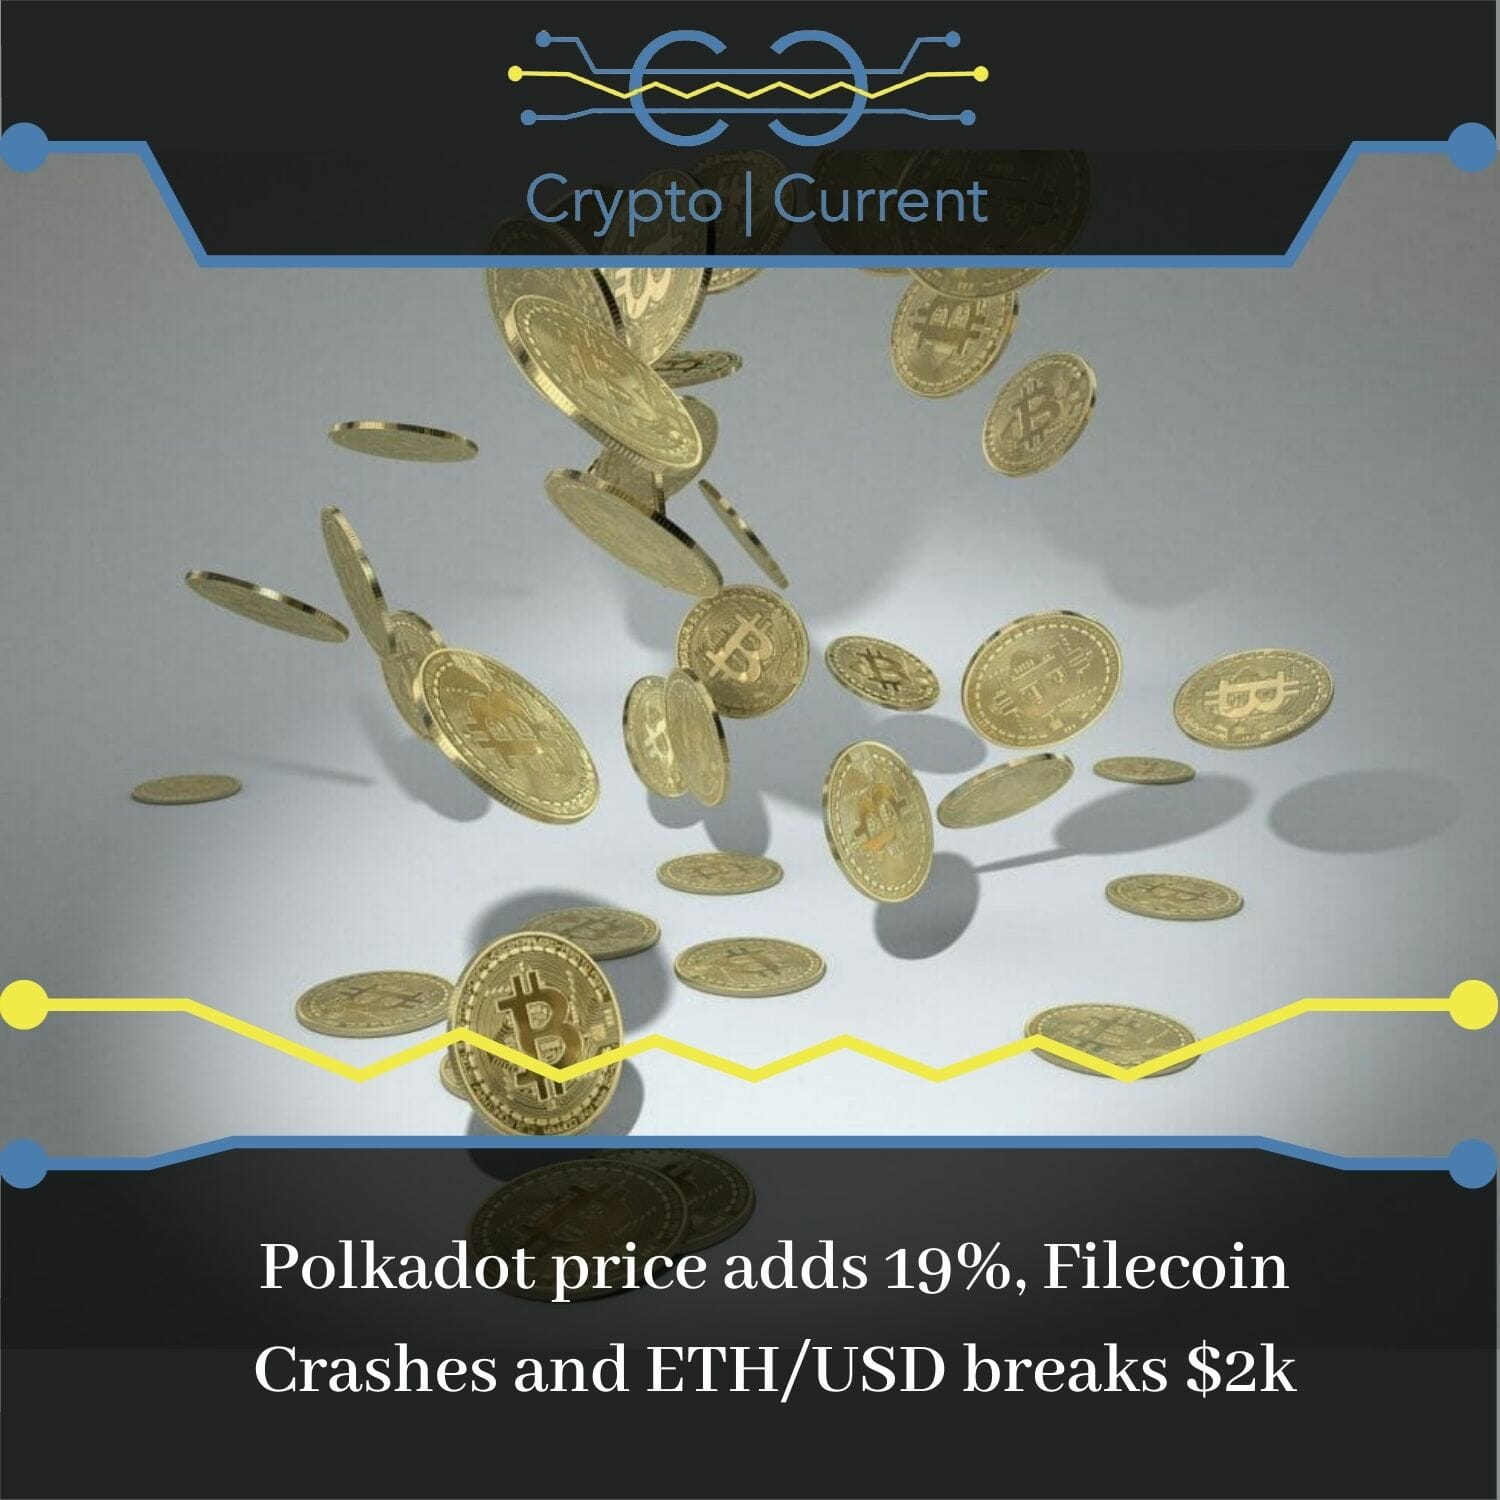 Polkadot price adds 19%, Filecoin Crashes and ETH_USD breaks $2k